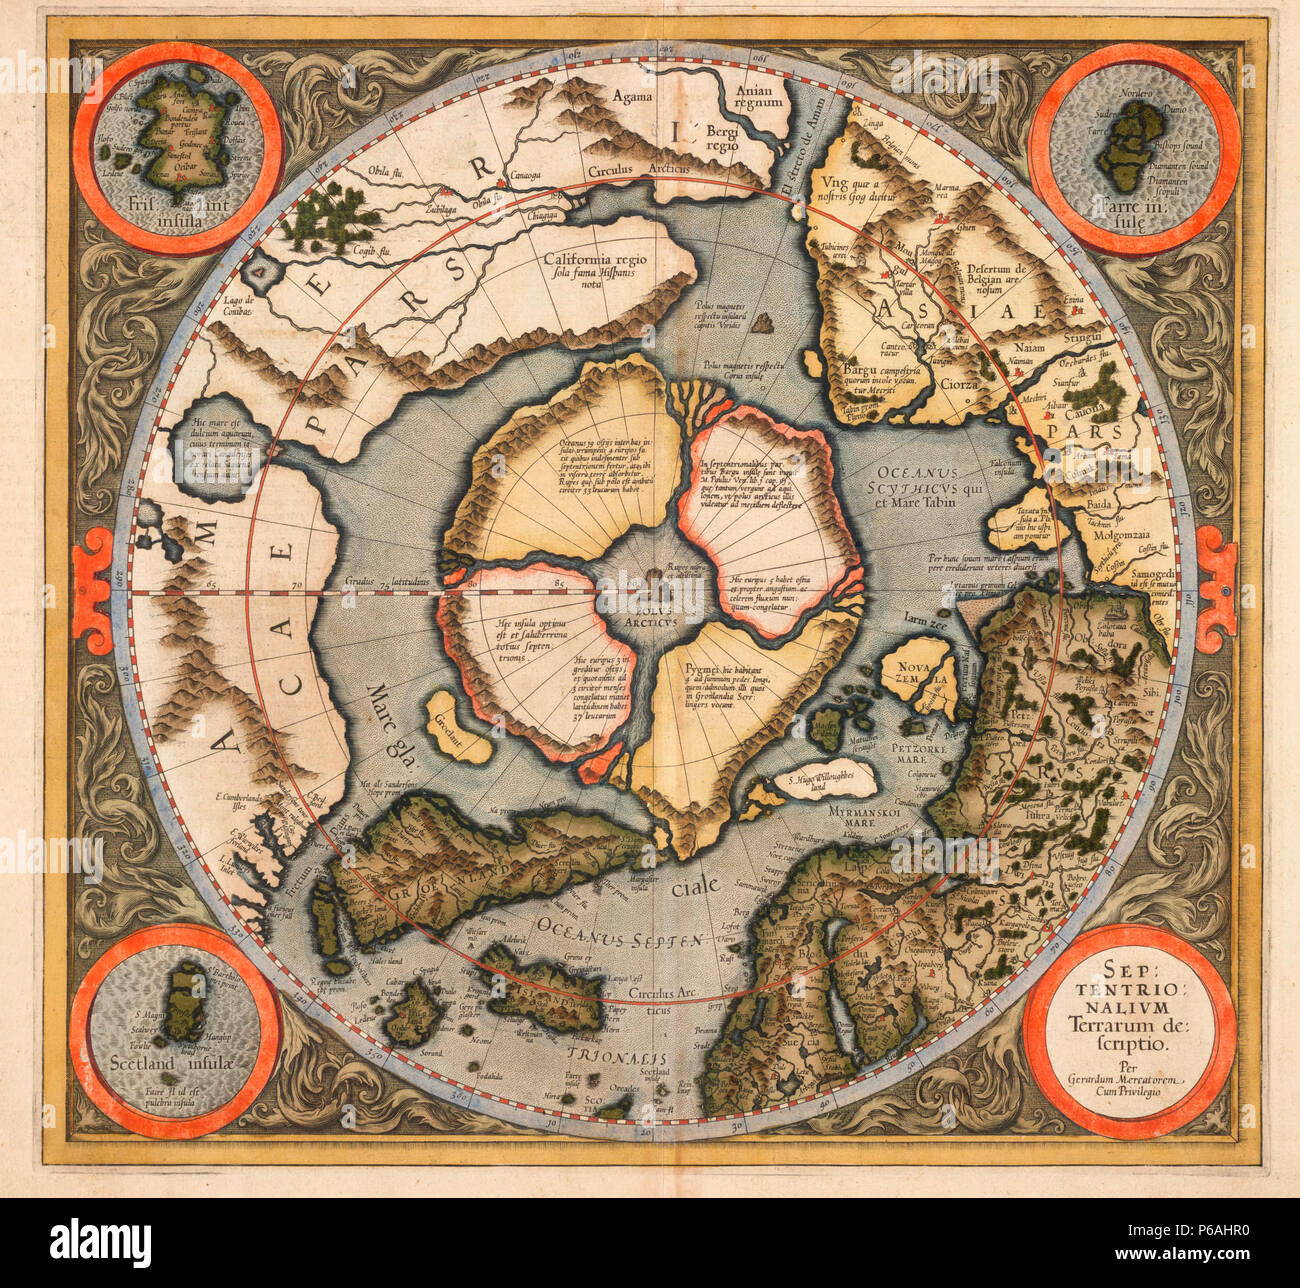 This is the first printed map of the Northern hemisphere from the Arctic pole to 60 degrees north latitude which was originally published in 1595. The map includes the discoveries of Frobisher (1576-78) and Davis (1585-87). - Stock Image